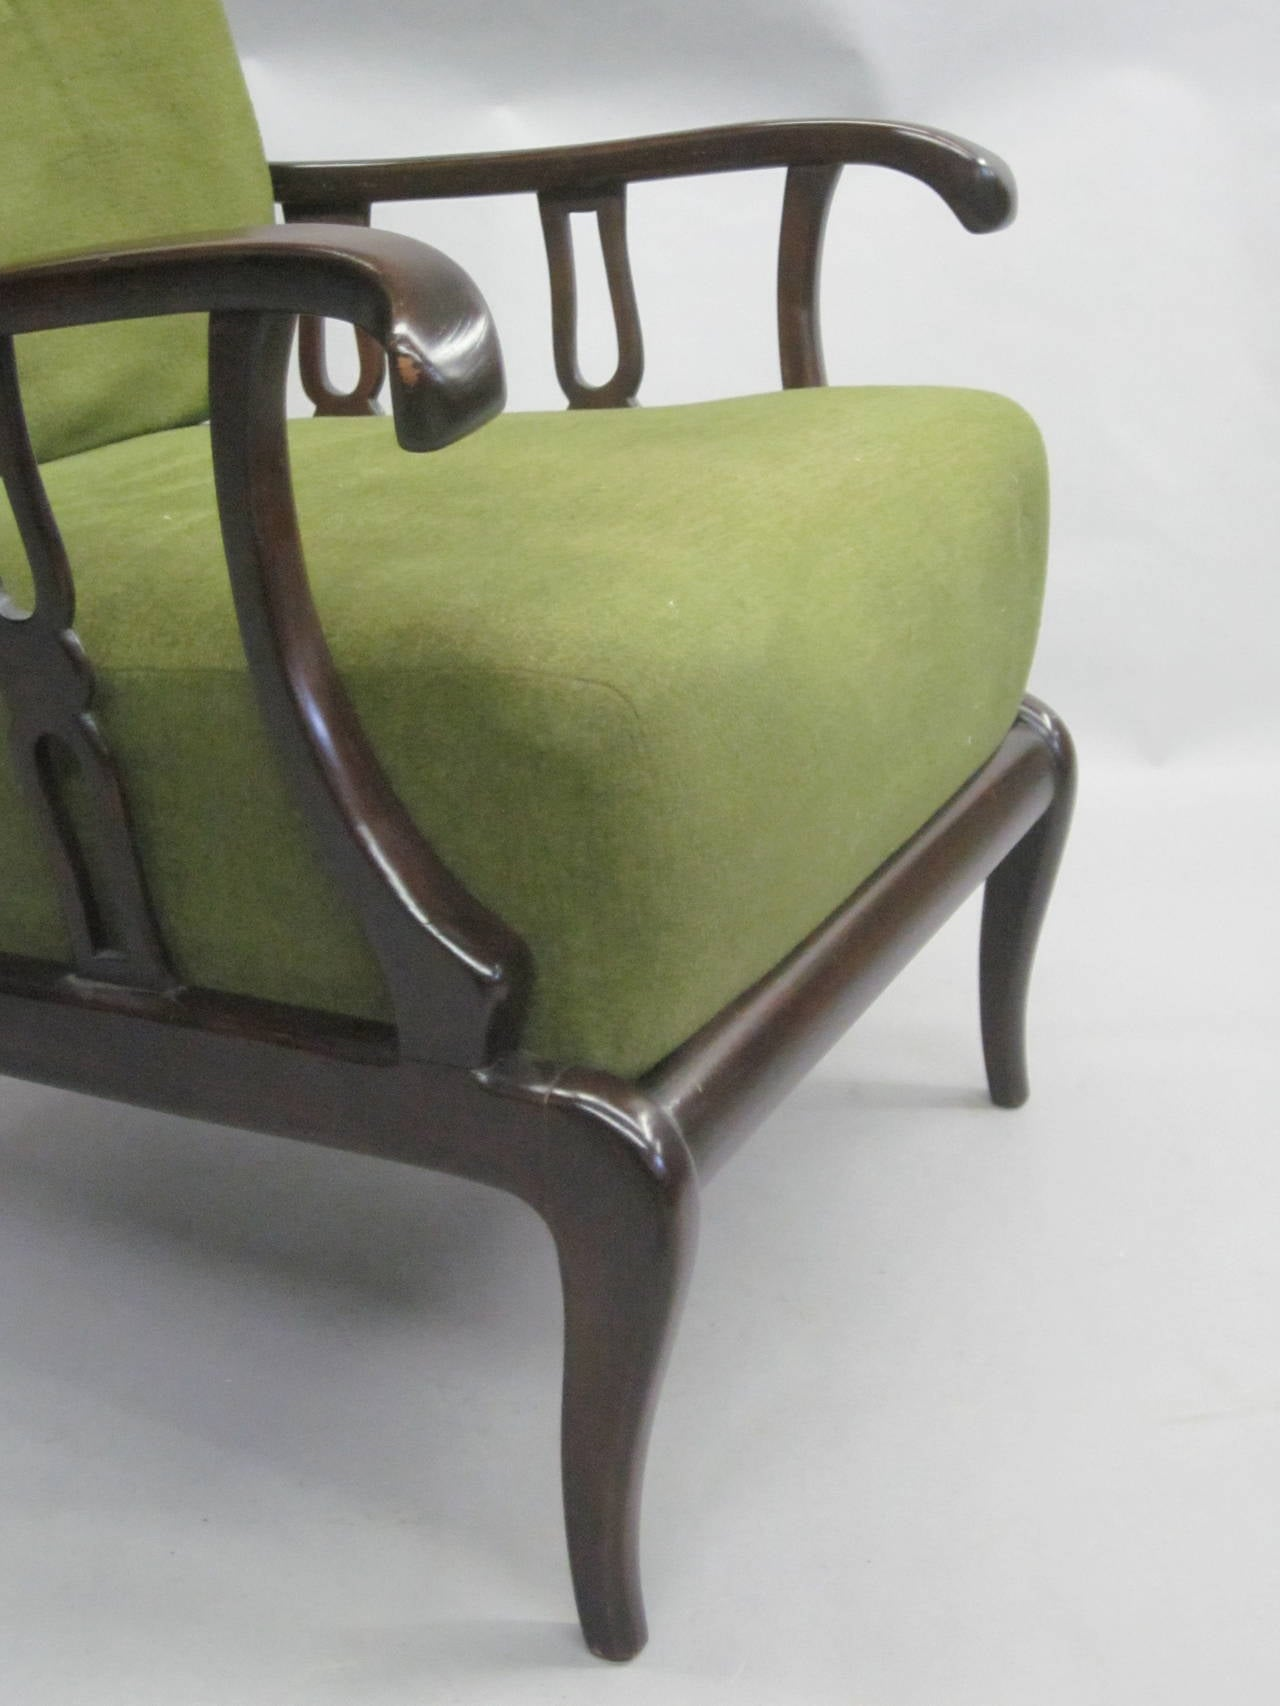 Pair of Italian Mid-Century Modern Neoclassical Lounge Chairs by Paolo Buffa For Sale 6